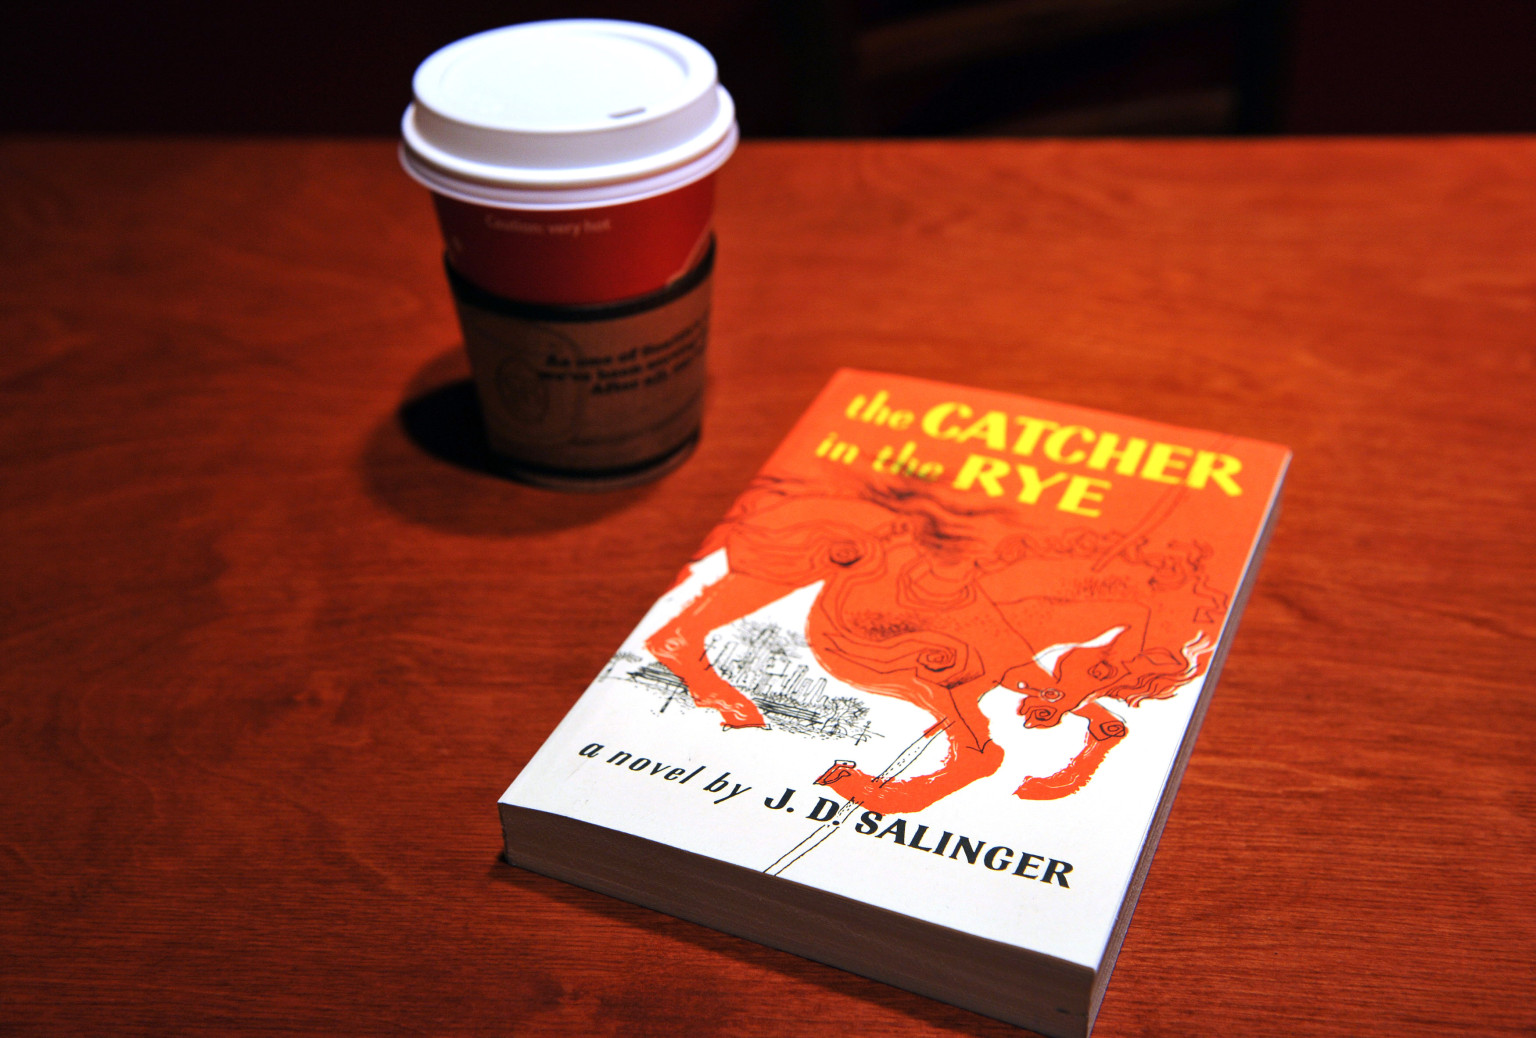 diagnosing holden caulfield Anyone know what a psychiatric diagnosis of holden would is in fact a mental illness therefore stating that holden caulfield doesn't have a mental illness.